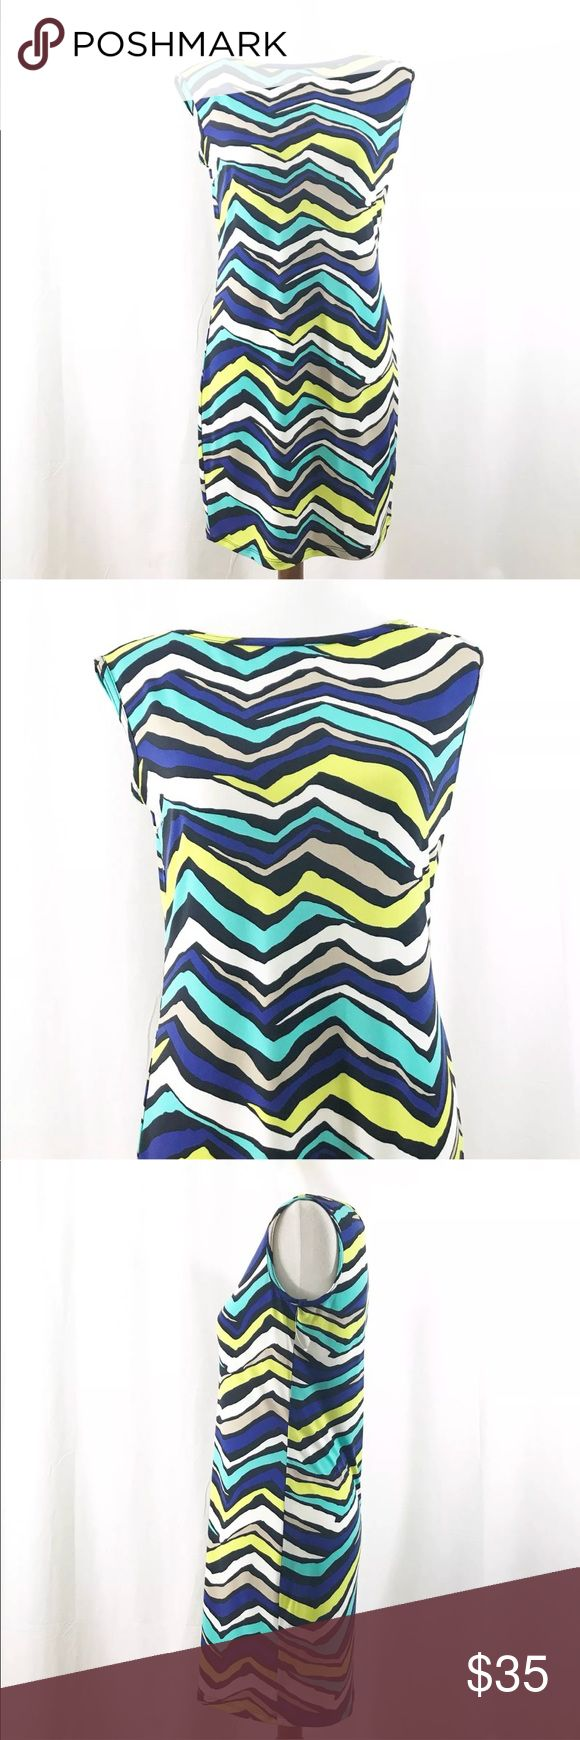 "Trina Turk Dress Small Blue Green Abstract Printed Trina Turk Dress Sz Small Blue Green Abstract Printed Stretch Sleeveless Sheath  Size: Small Color: Blue, Green, Black, White (Laying flat) Shoulder to shoulder: 17"" (Laying flat) underarm to underarm: 19"" (Laying flat) Shoulder to hem: 33"" Pre-owned, Used, No rips, stains or holes All items are as pictured. Please see all pictures before buying. Trina Turk Dresses"